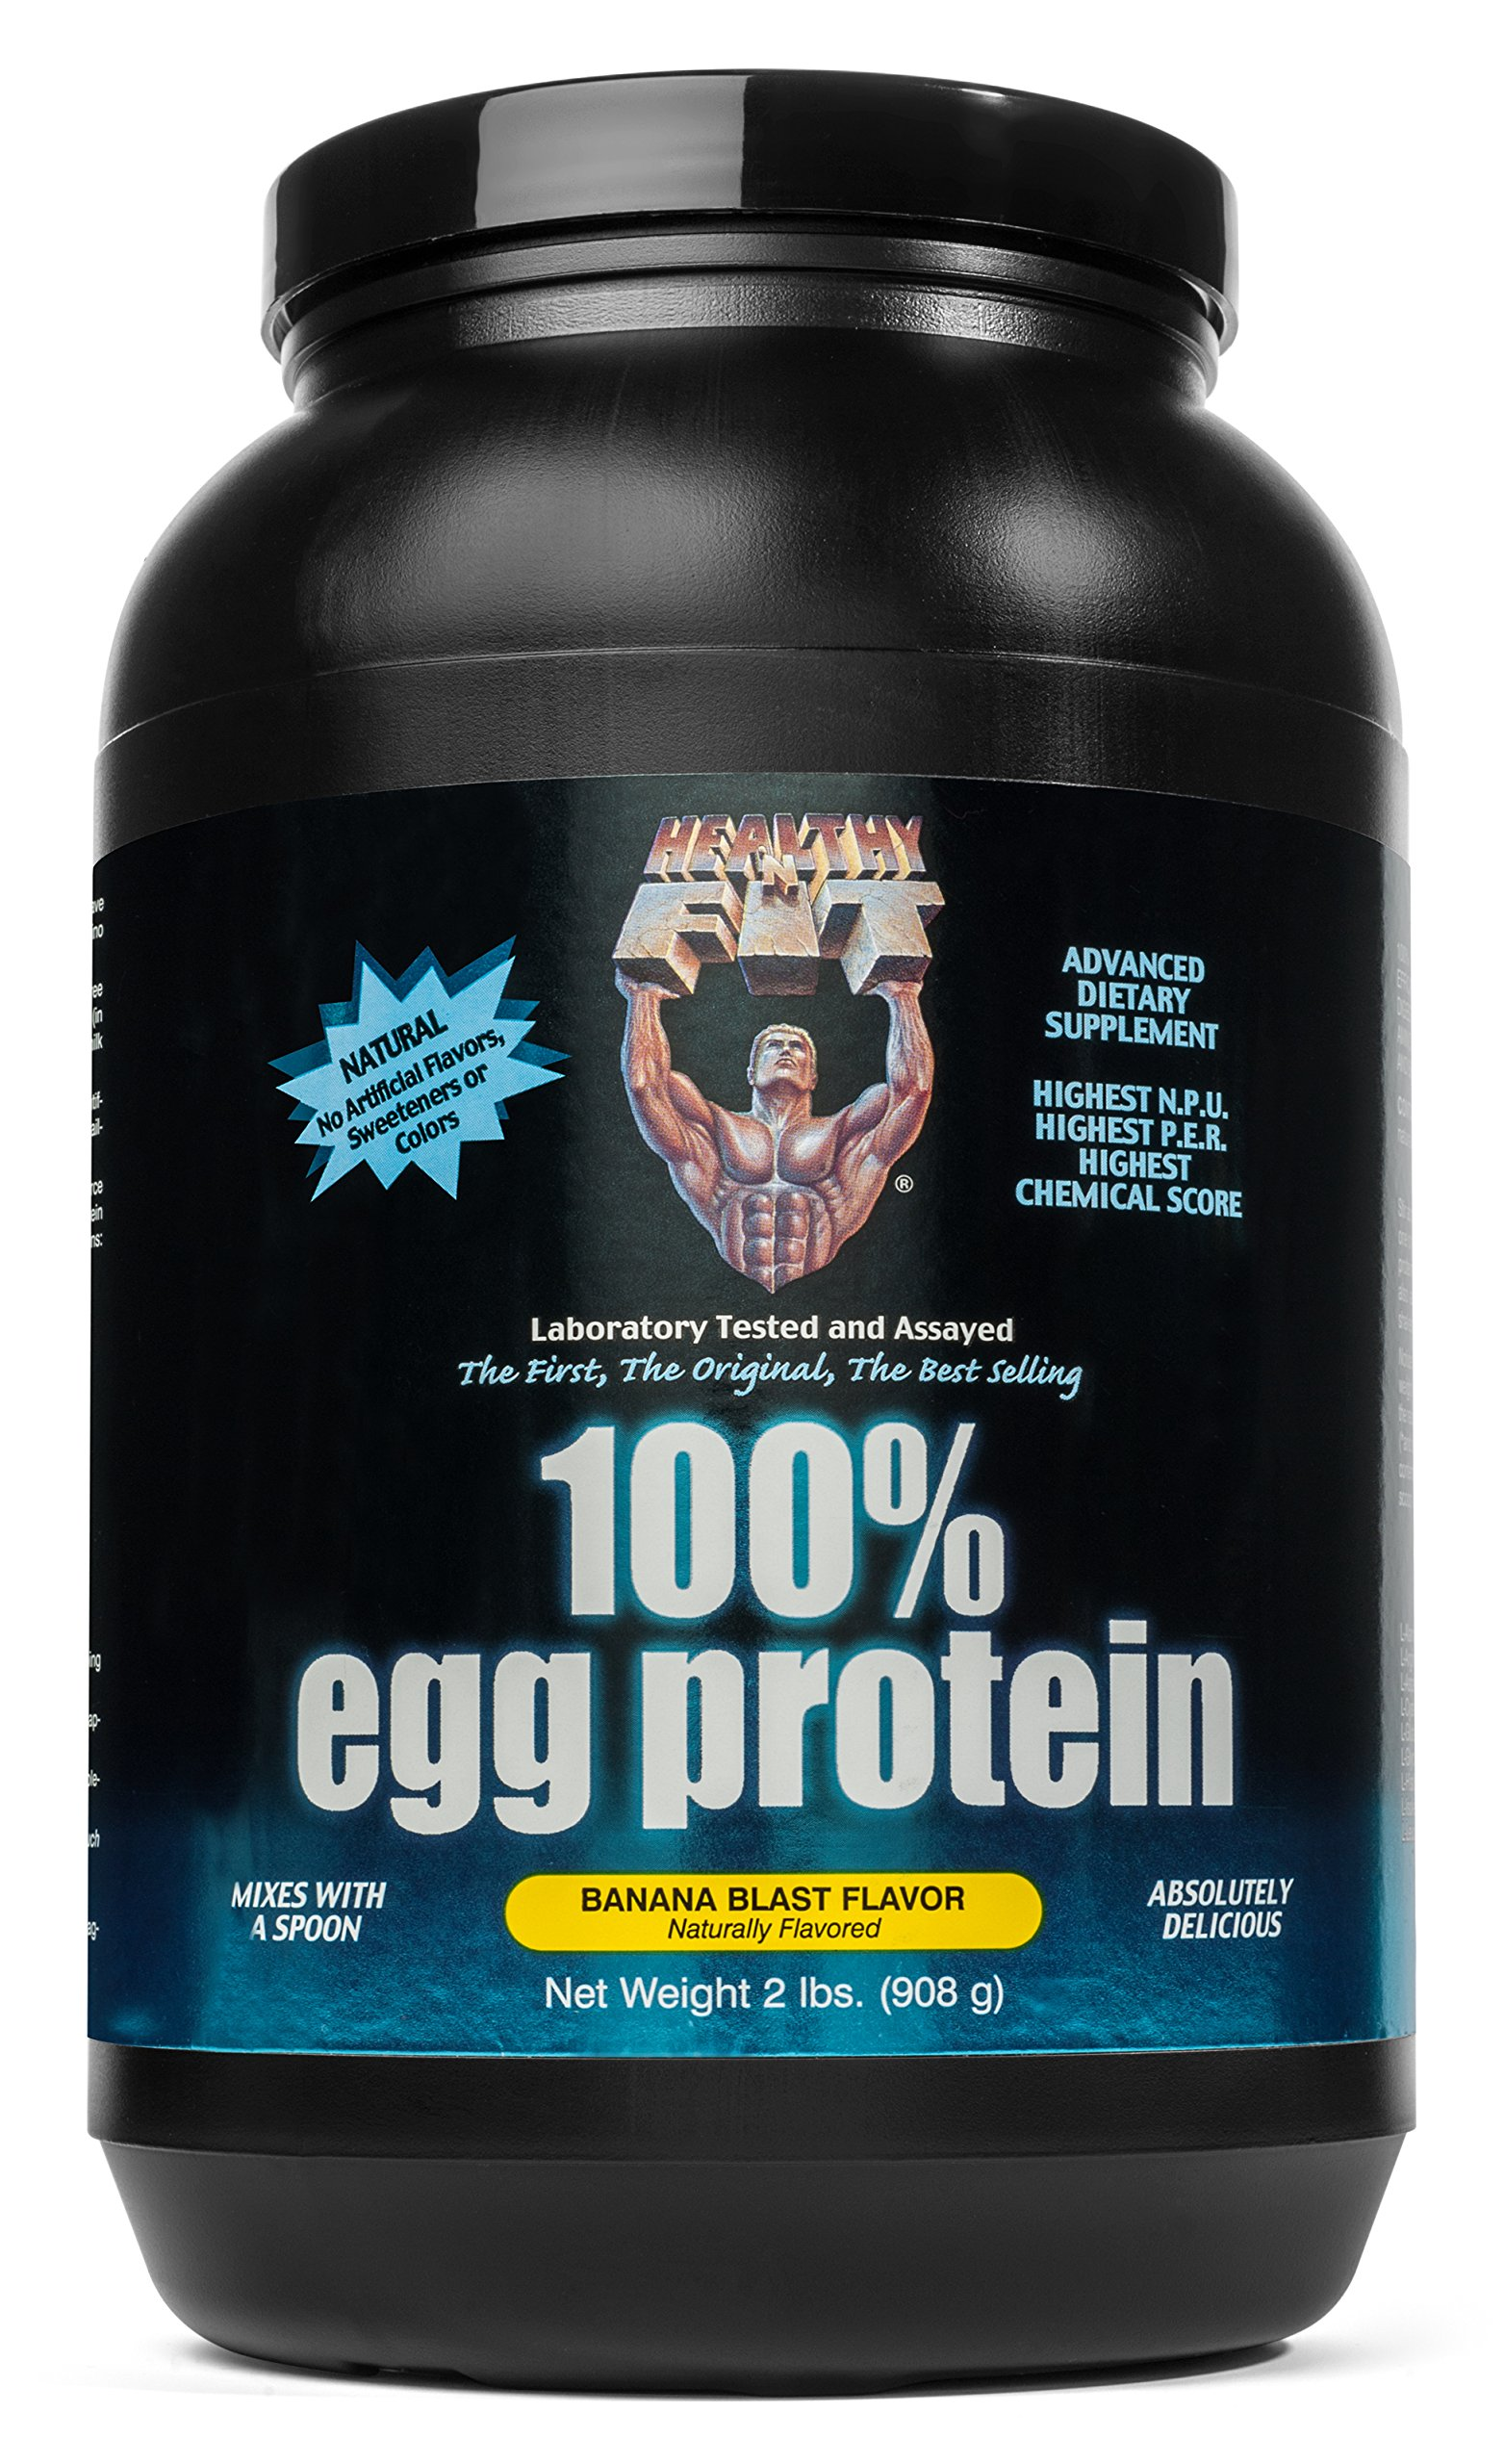 Healthy 'N Fit 100% EGG PROTEIN- Banana (2lb): 100% Egg White Protein PLUS Natural Peptides. The Highest Quality, Purest, Most Effective, All Natural Protein.